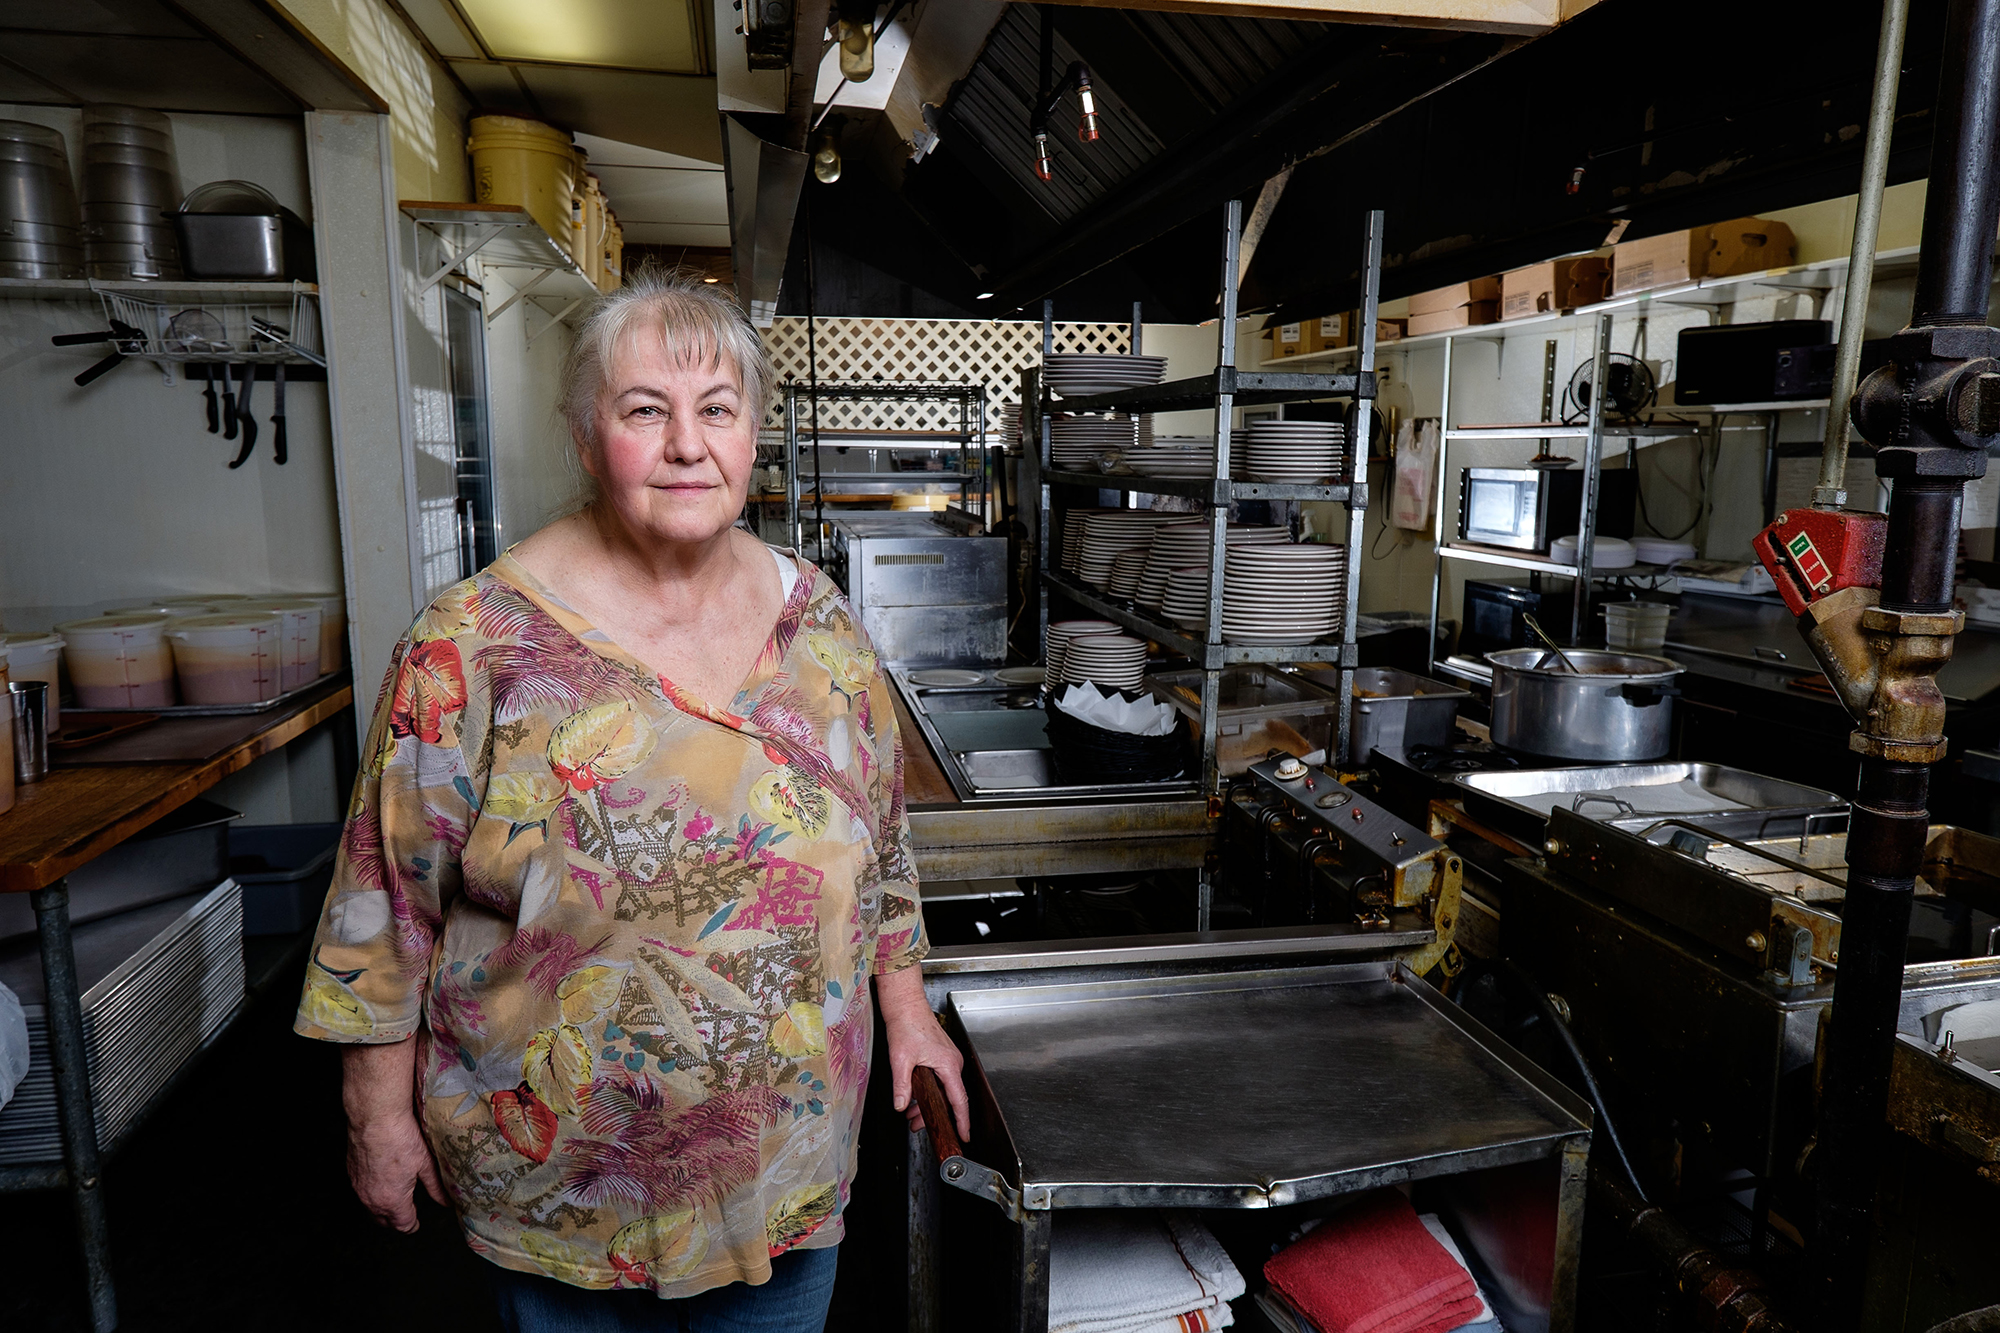 Carole Hinders inside her Mexican restaurant. Photo courtesy of The Institute for Justice.